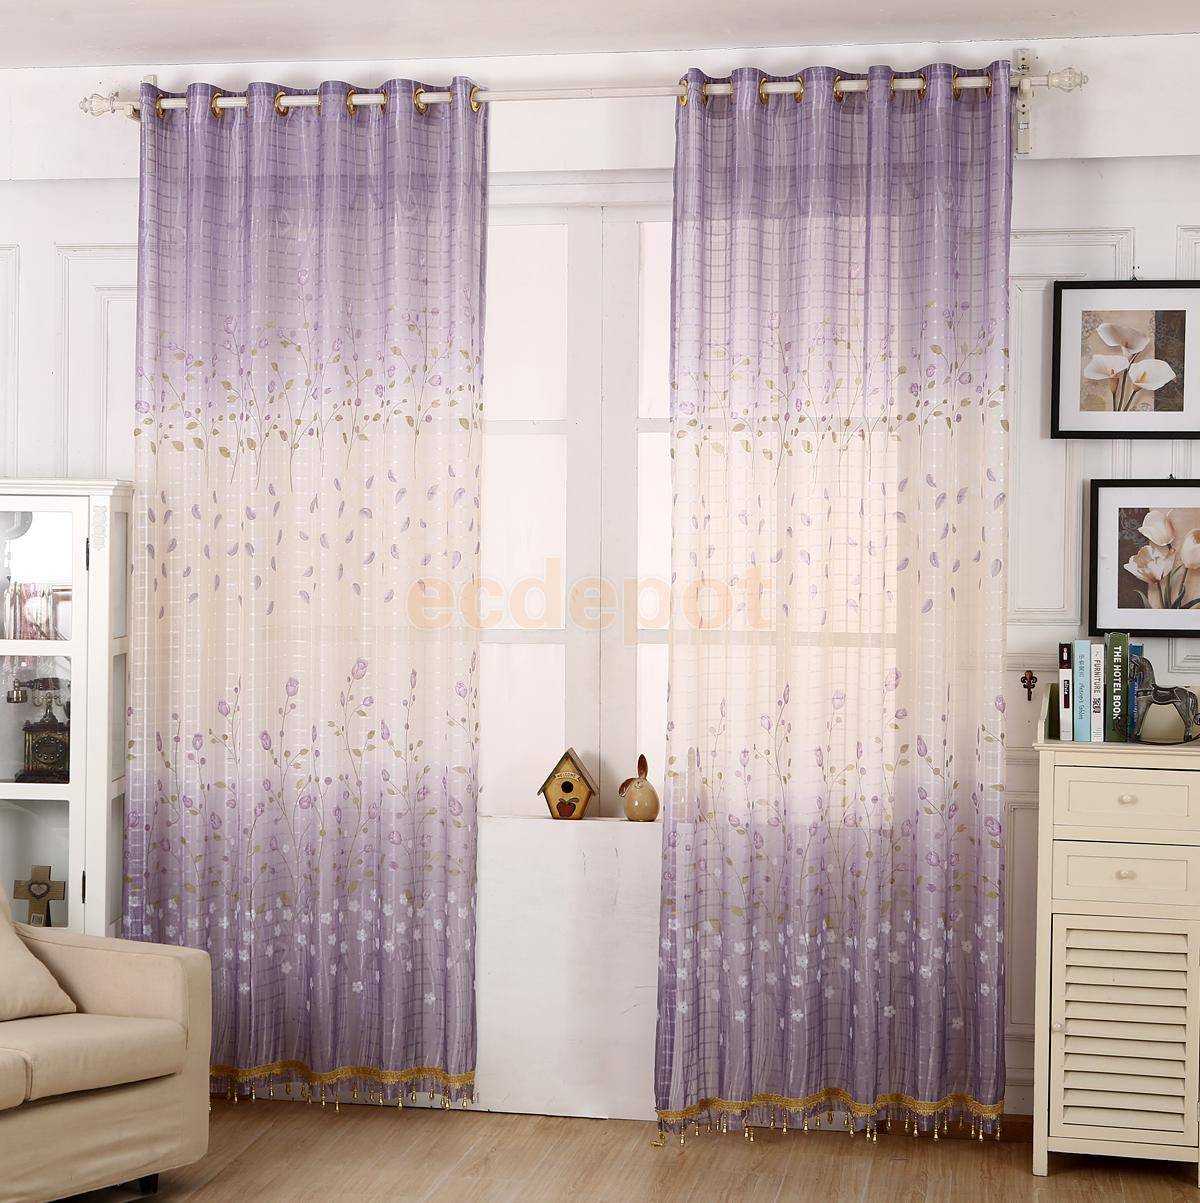 Sheer plum curtains - Purple Tulips Sheer Tulle Curtains Window Blinds Panel With Beads 250 X100cm China